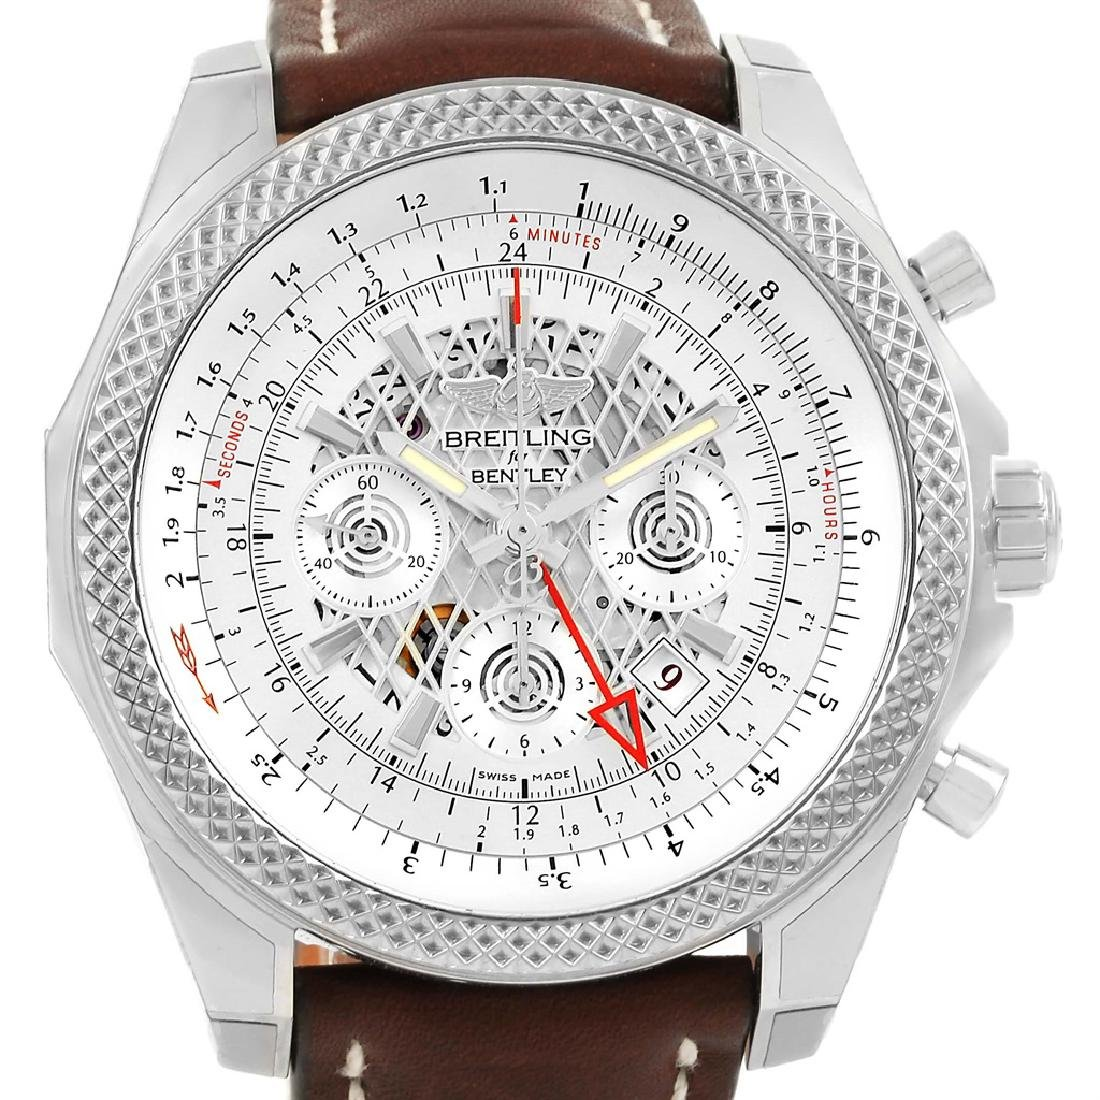 Breitling Bentley GMT Chronograph Mens Wristwatch - 2